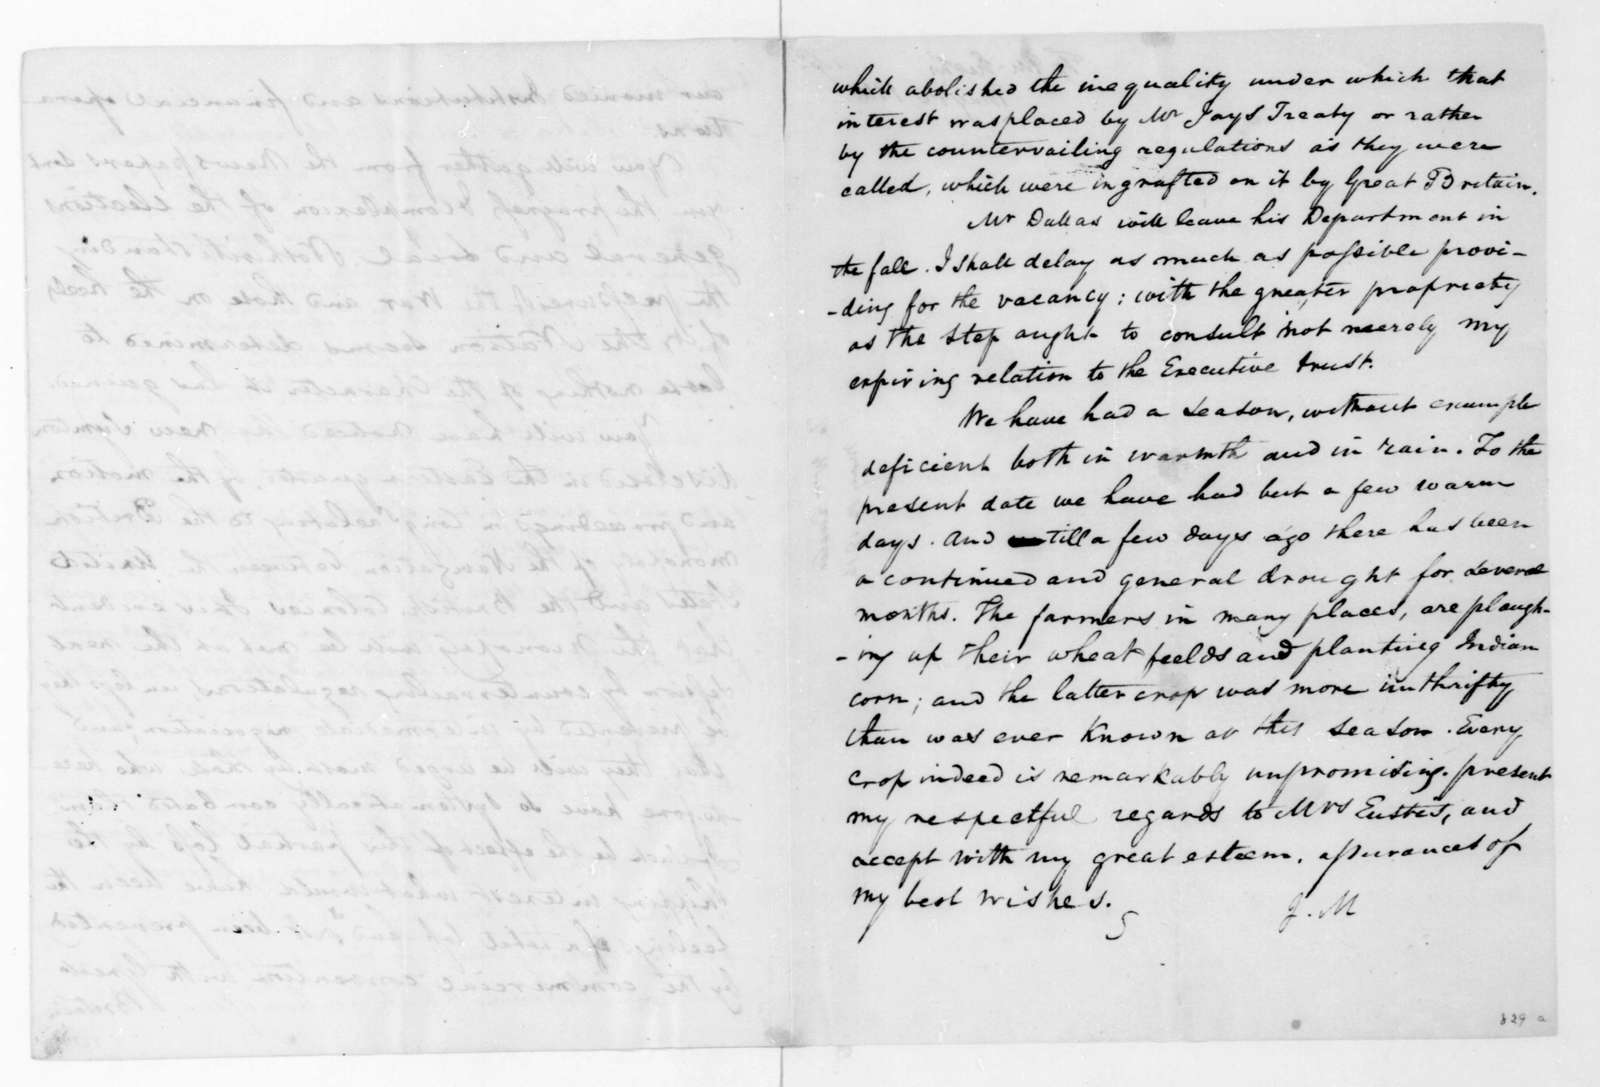 James Madison to William Eustis, May 12, 1816.